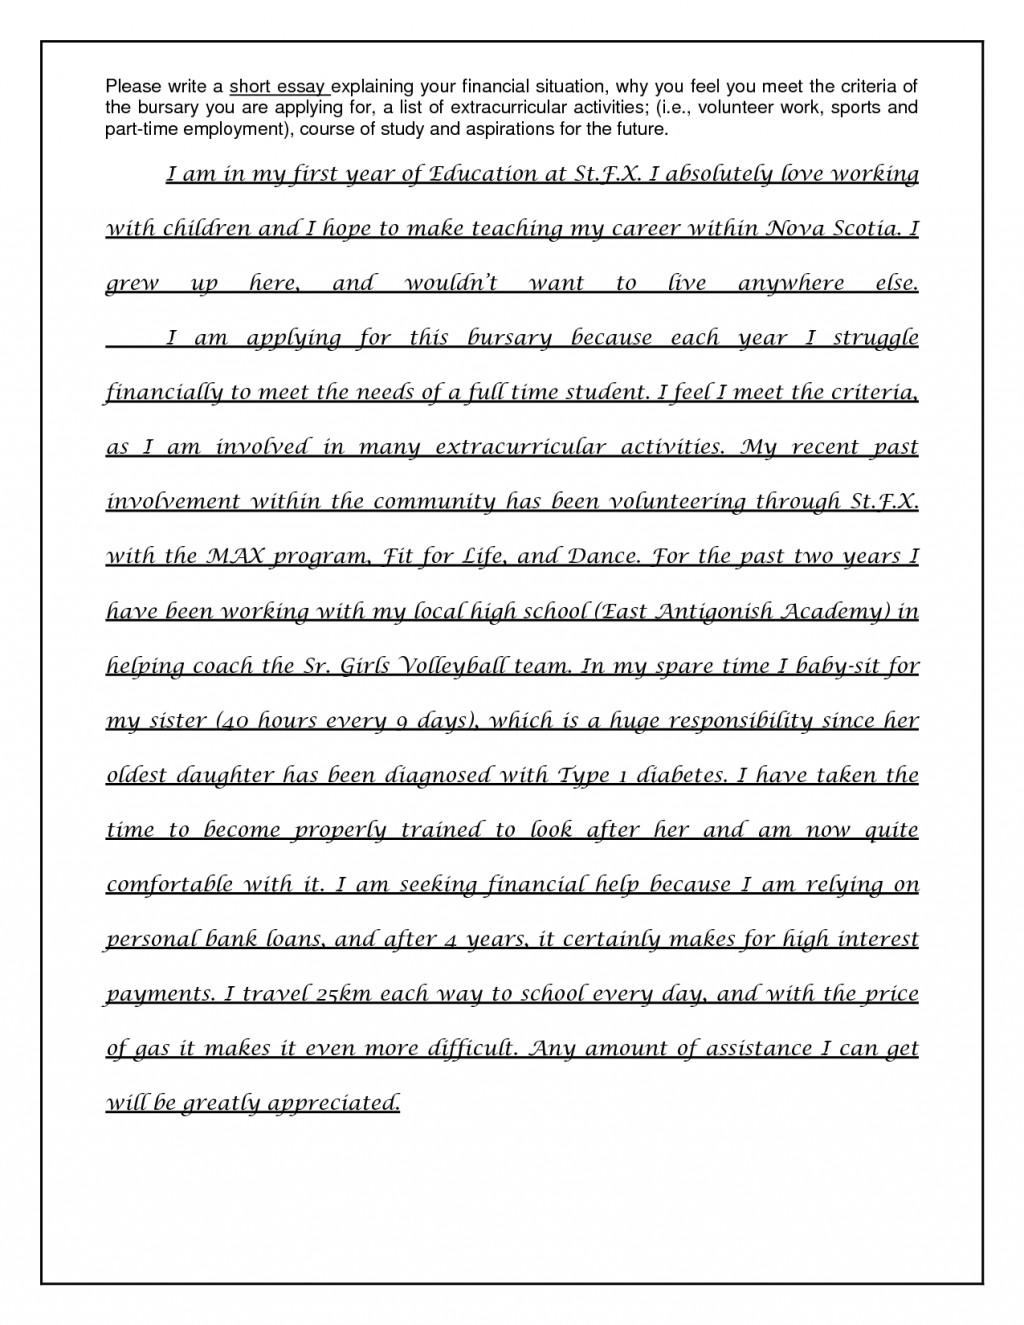 003 Essay Example Why I Need Scholarship Financial Sample Scholarships Examples For Students How Write Essa College Impressive A Should Receive Want To Be Teacher Large